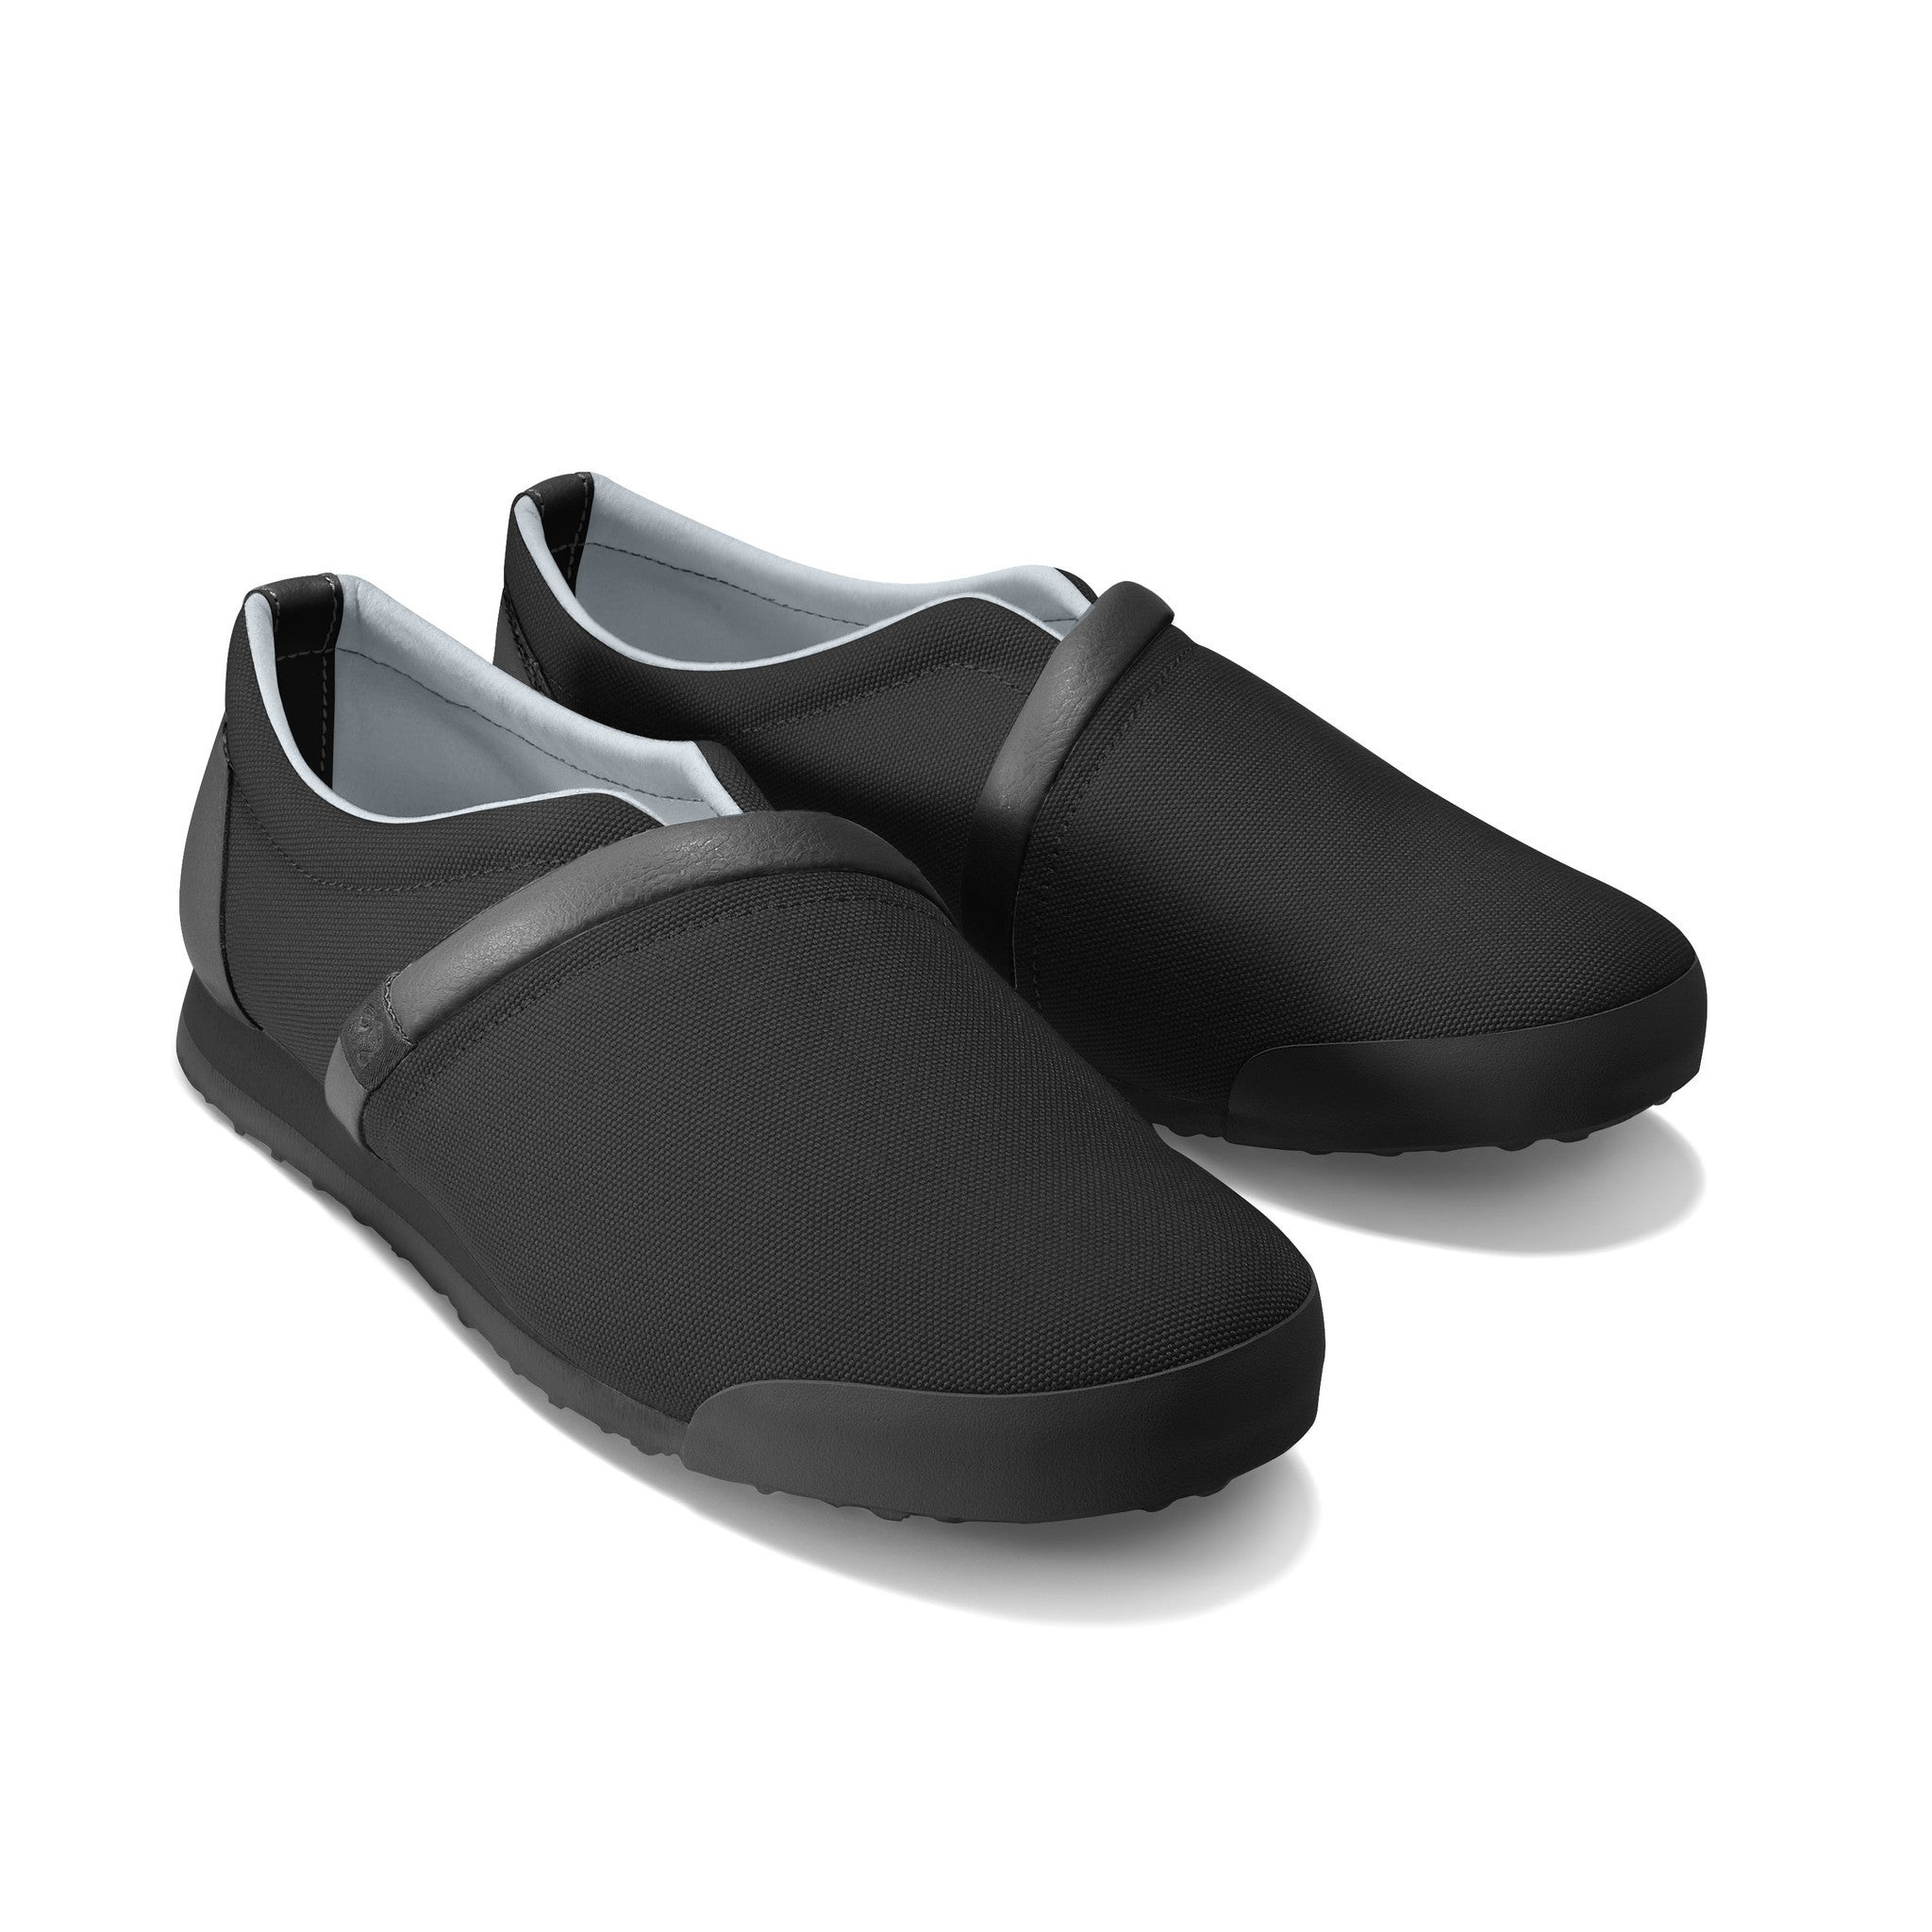 Jet_Black - Common Ground Footwear Shoes Right Perspective View